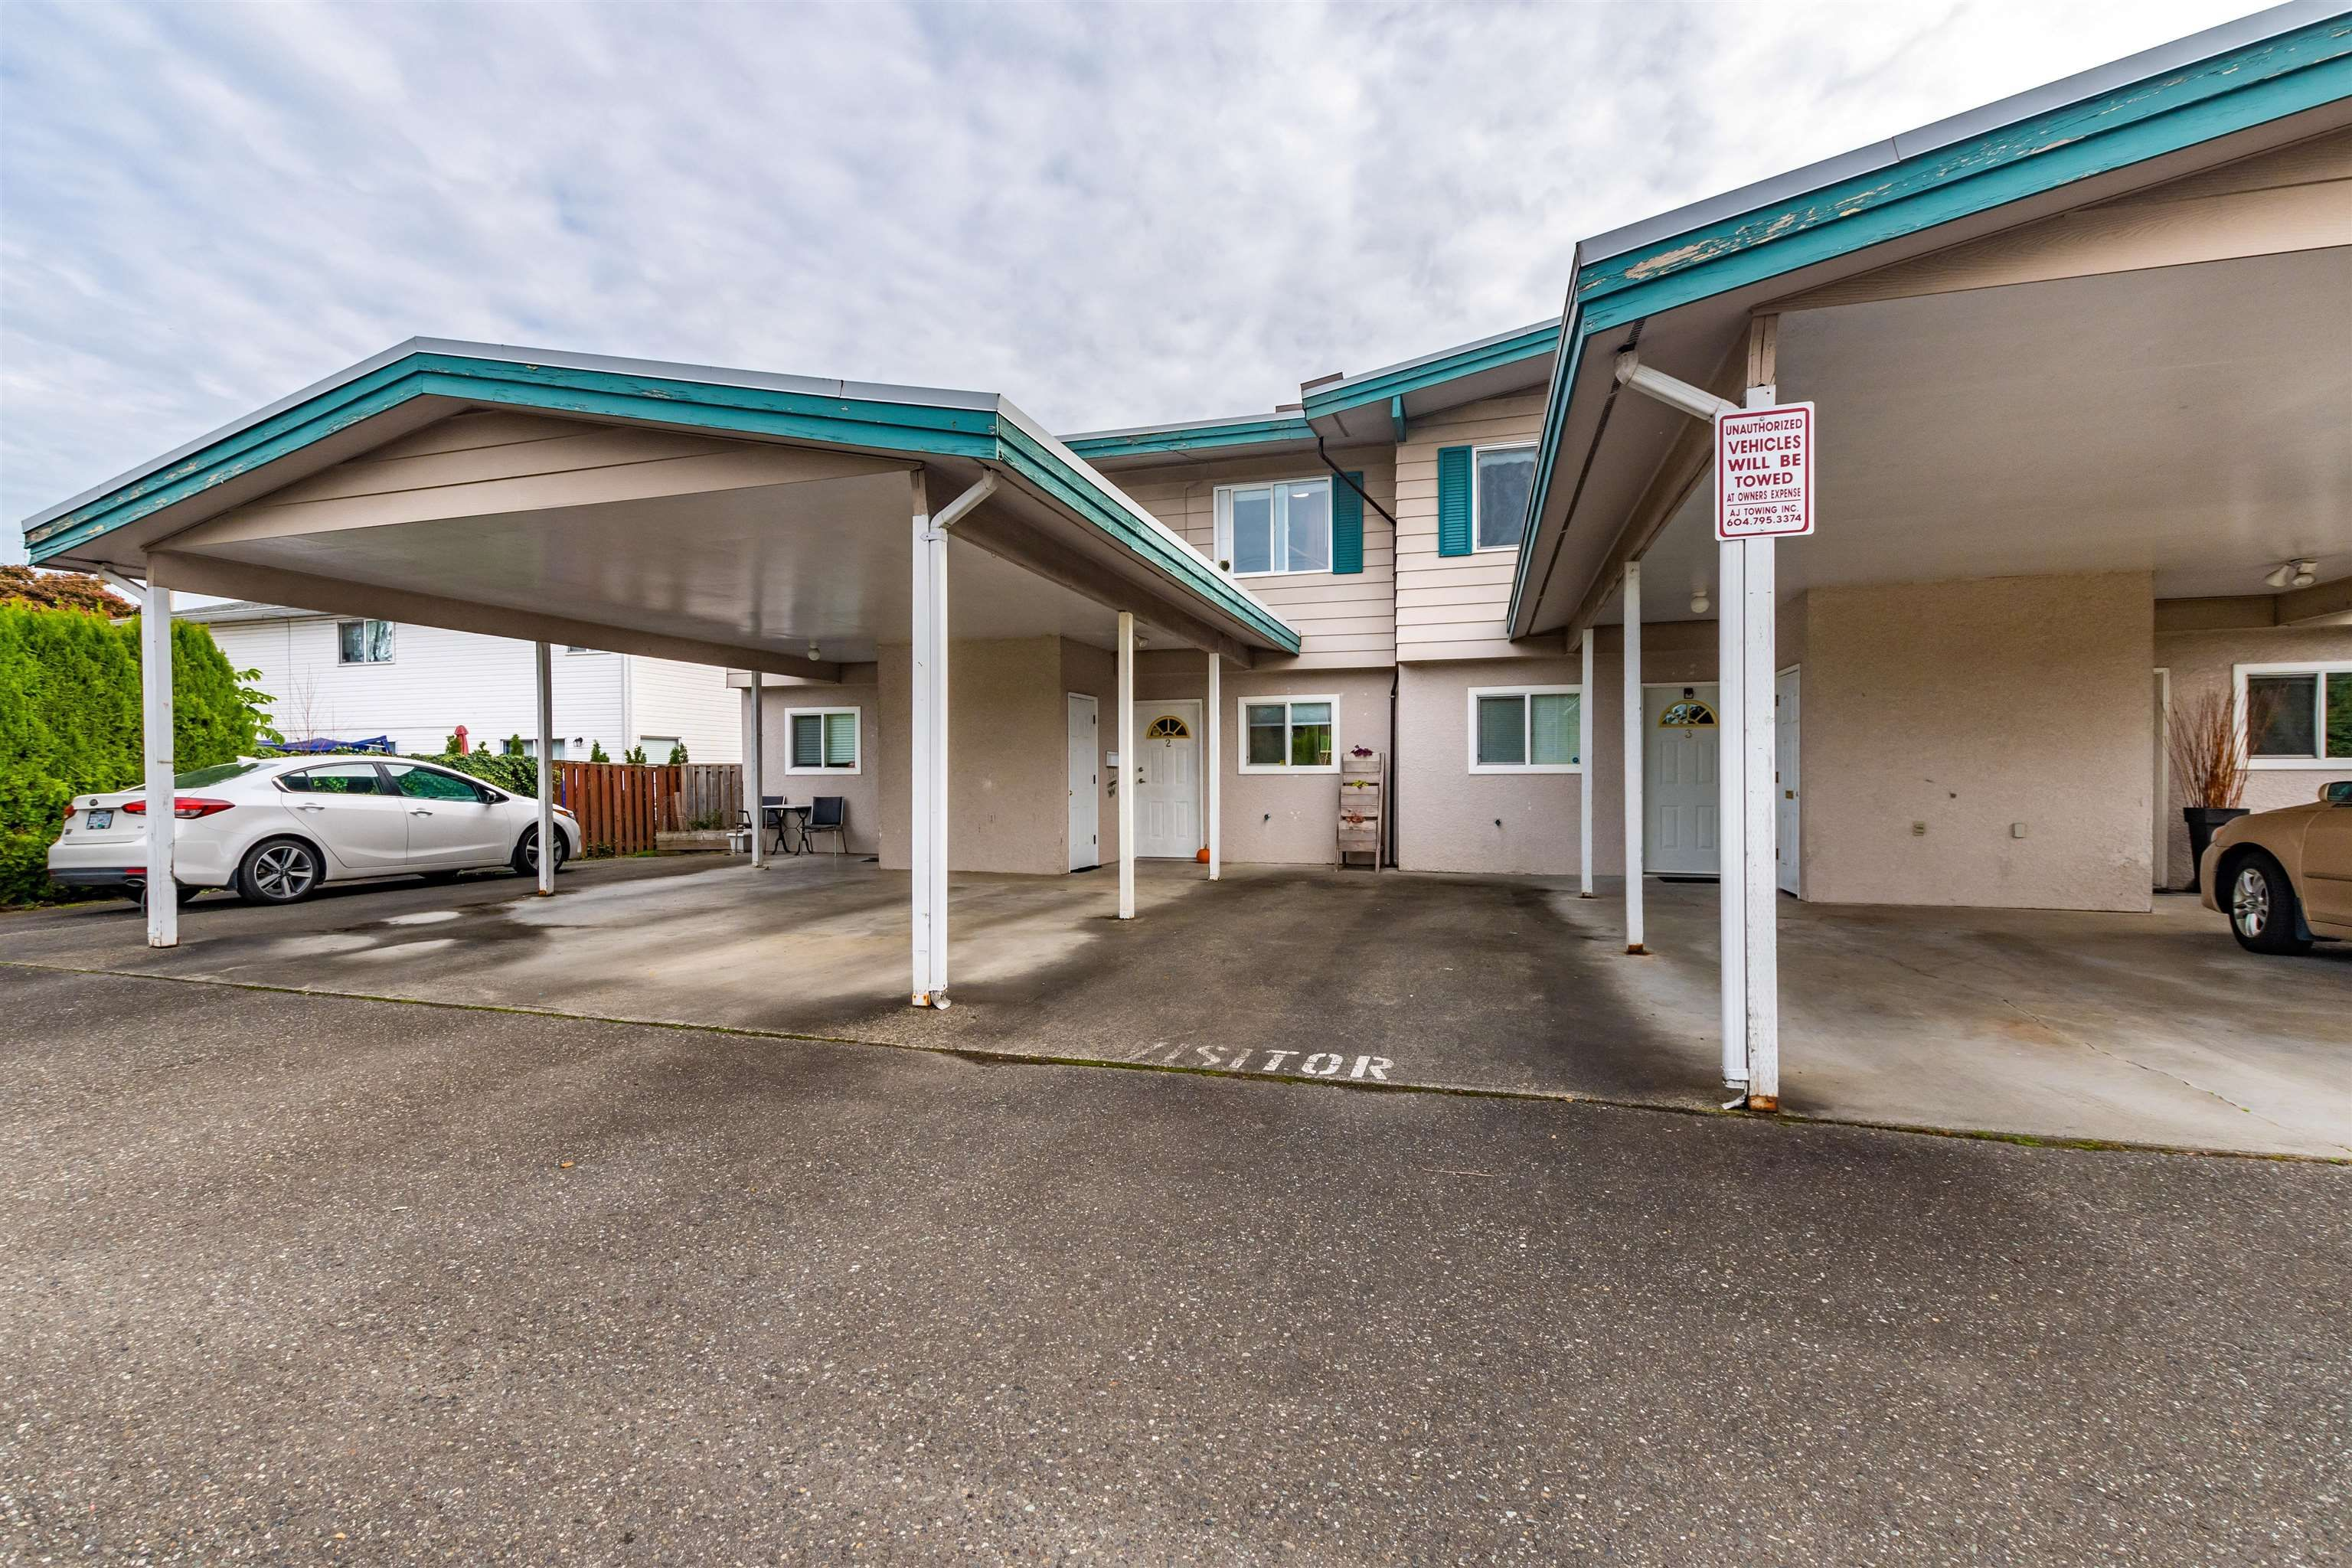 Main Photo: 2 9262 CHARLES Street in Chilliwack: Chilliwack E Young-Yale Townhouse for sale : MLS®# R2625275